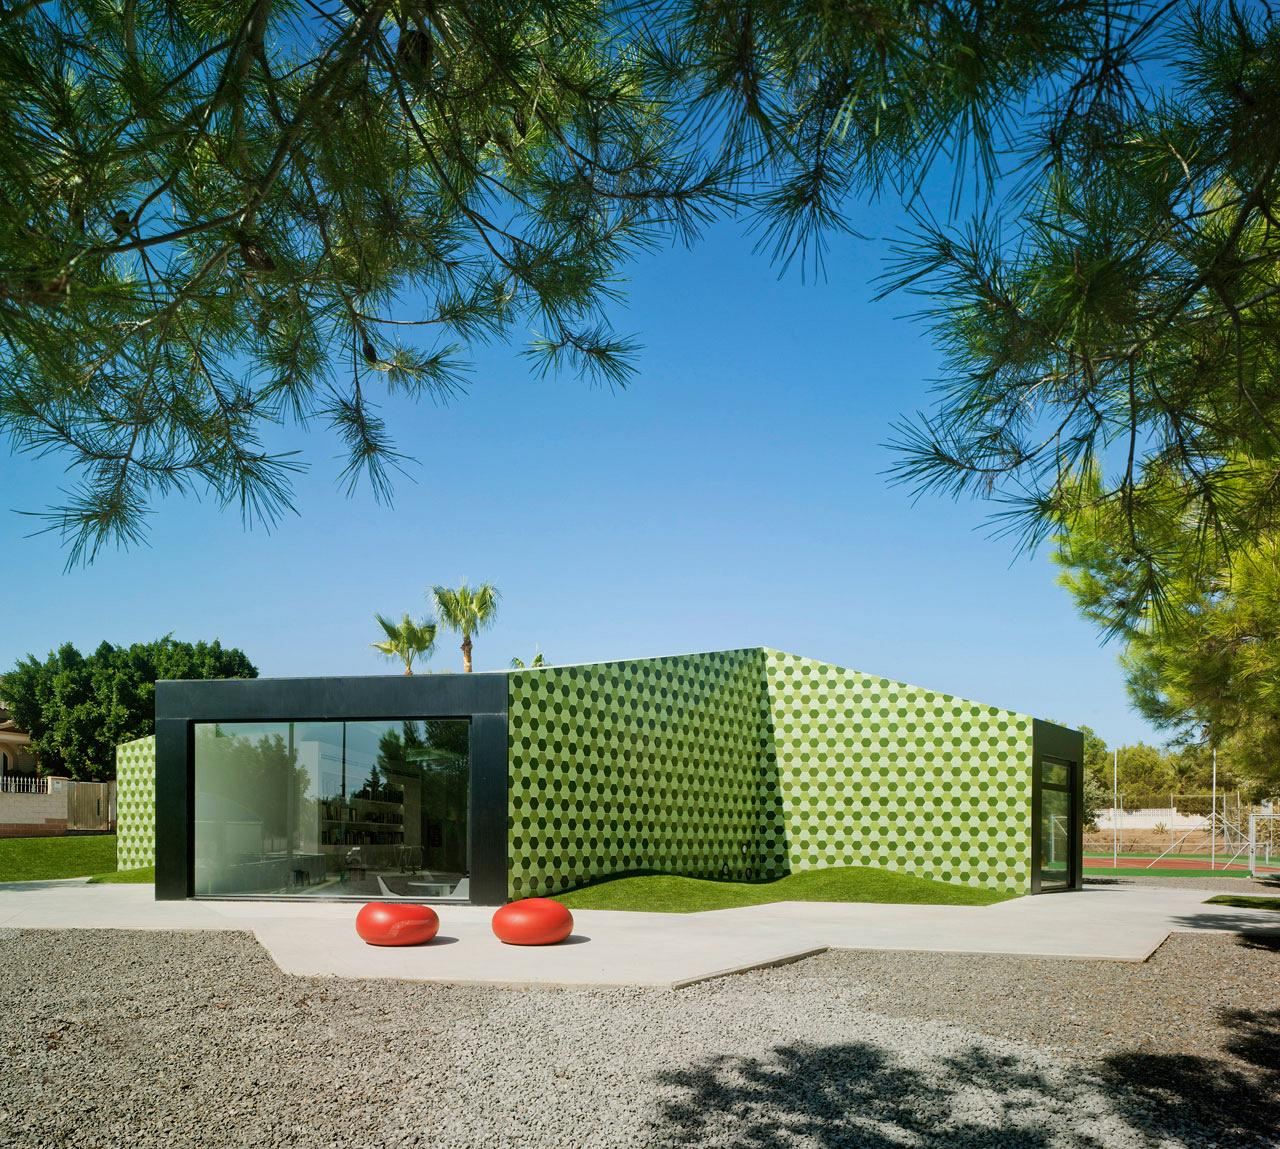 Crystalzoo, awarded the Architizer A+Awards for 'The Administrative Extension in La Nucia' 2